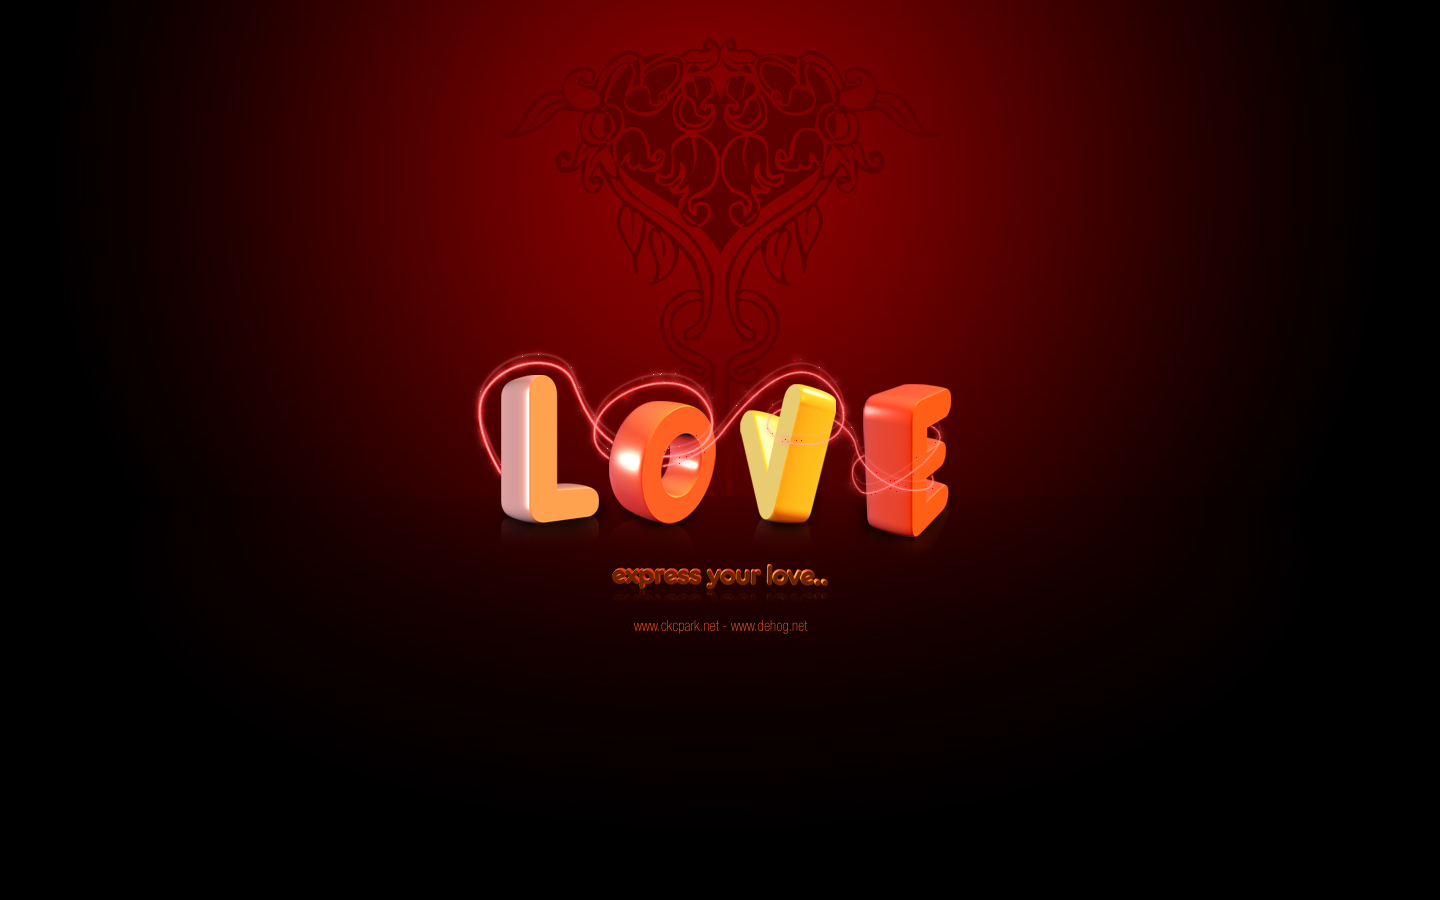 Love Background Wallpapers